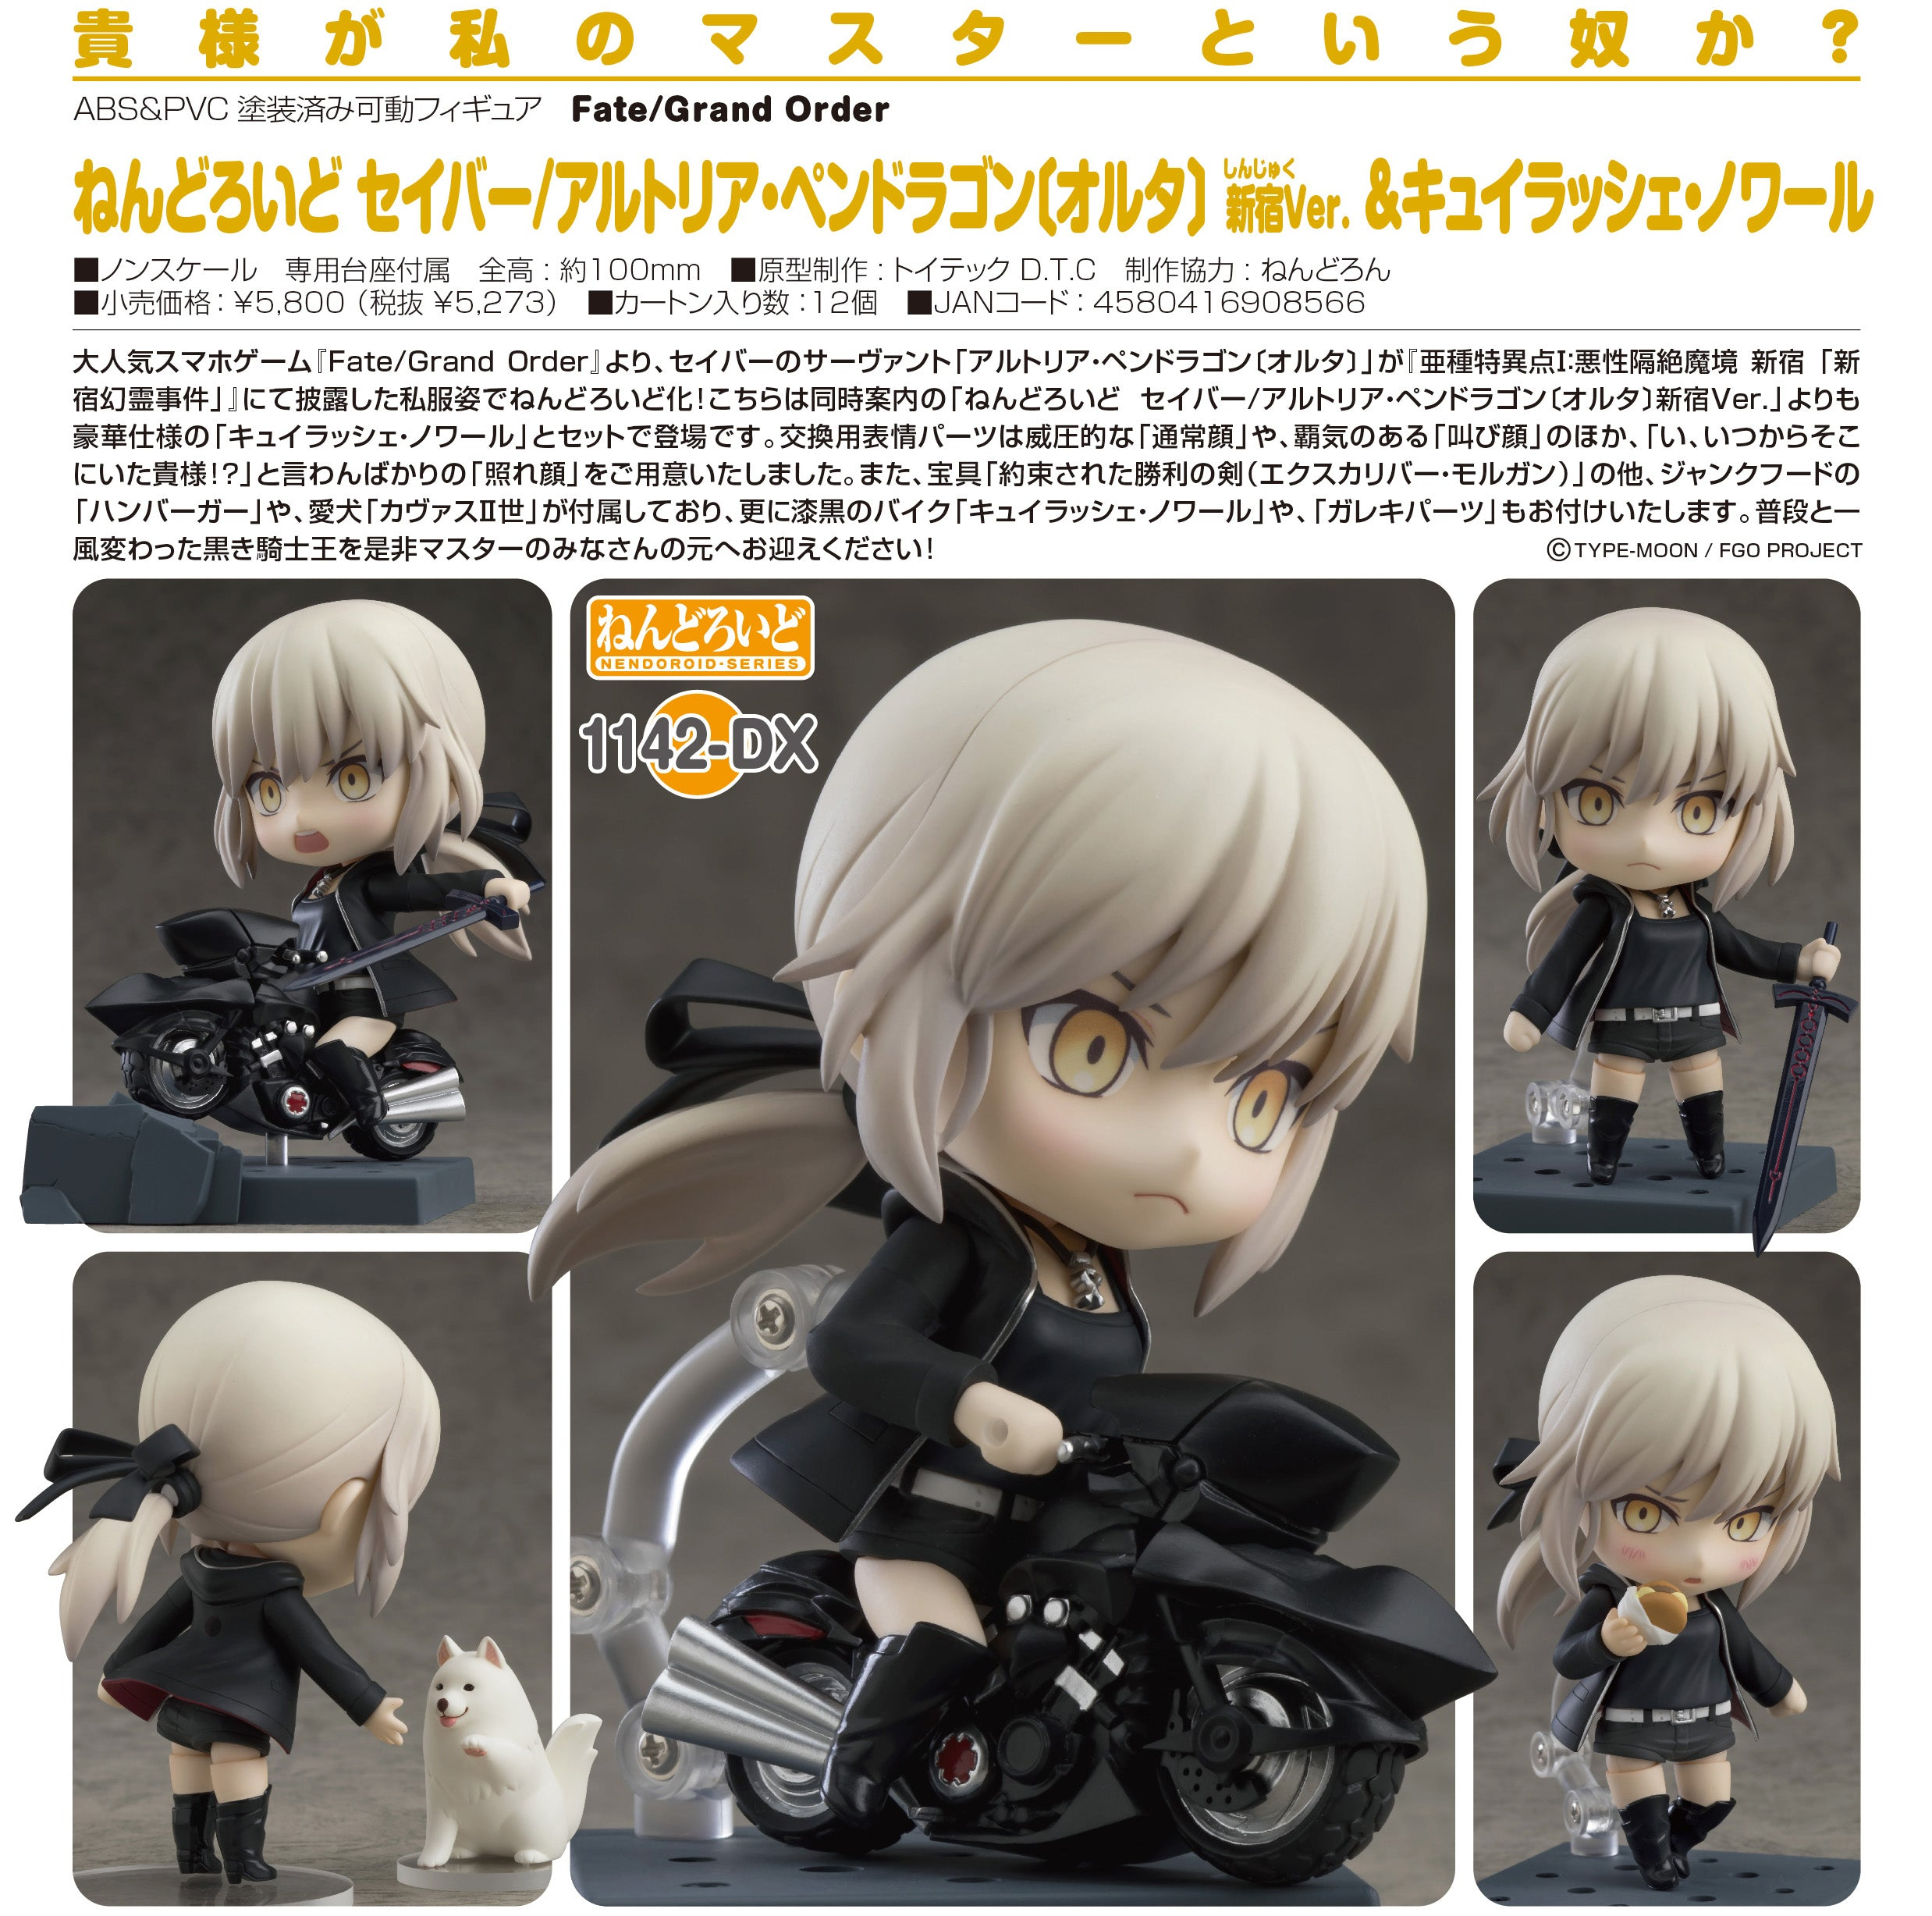 NEW Fate stay night Nendoroid Saber Alter Super Movable Edition non-scale ABS